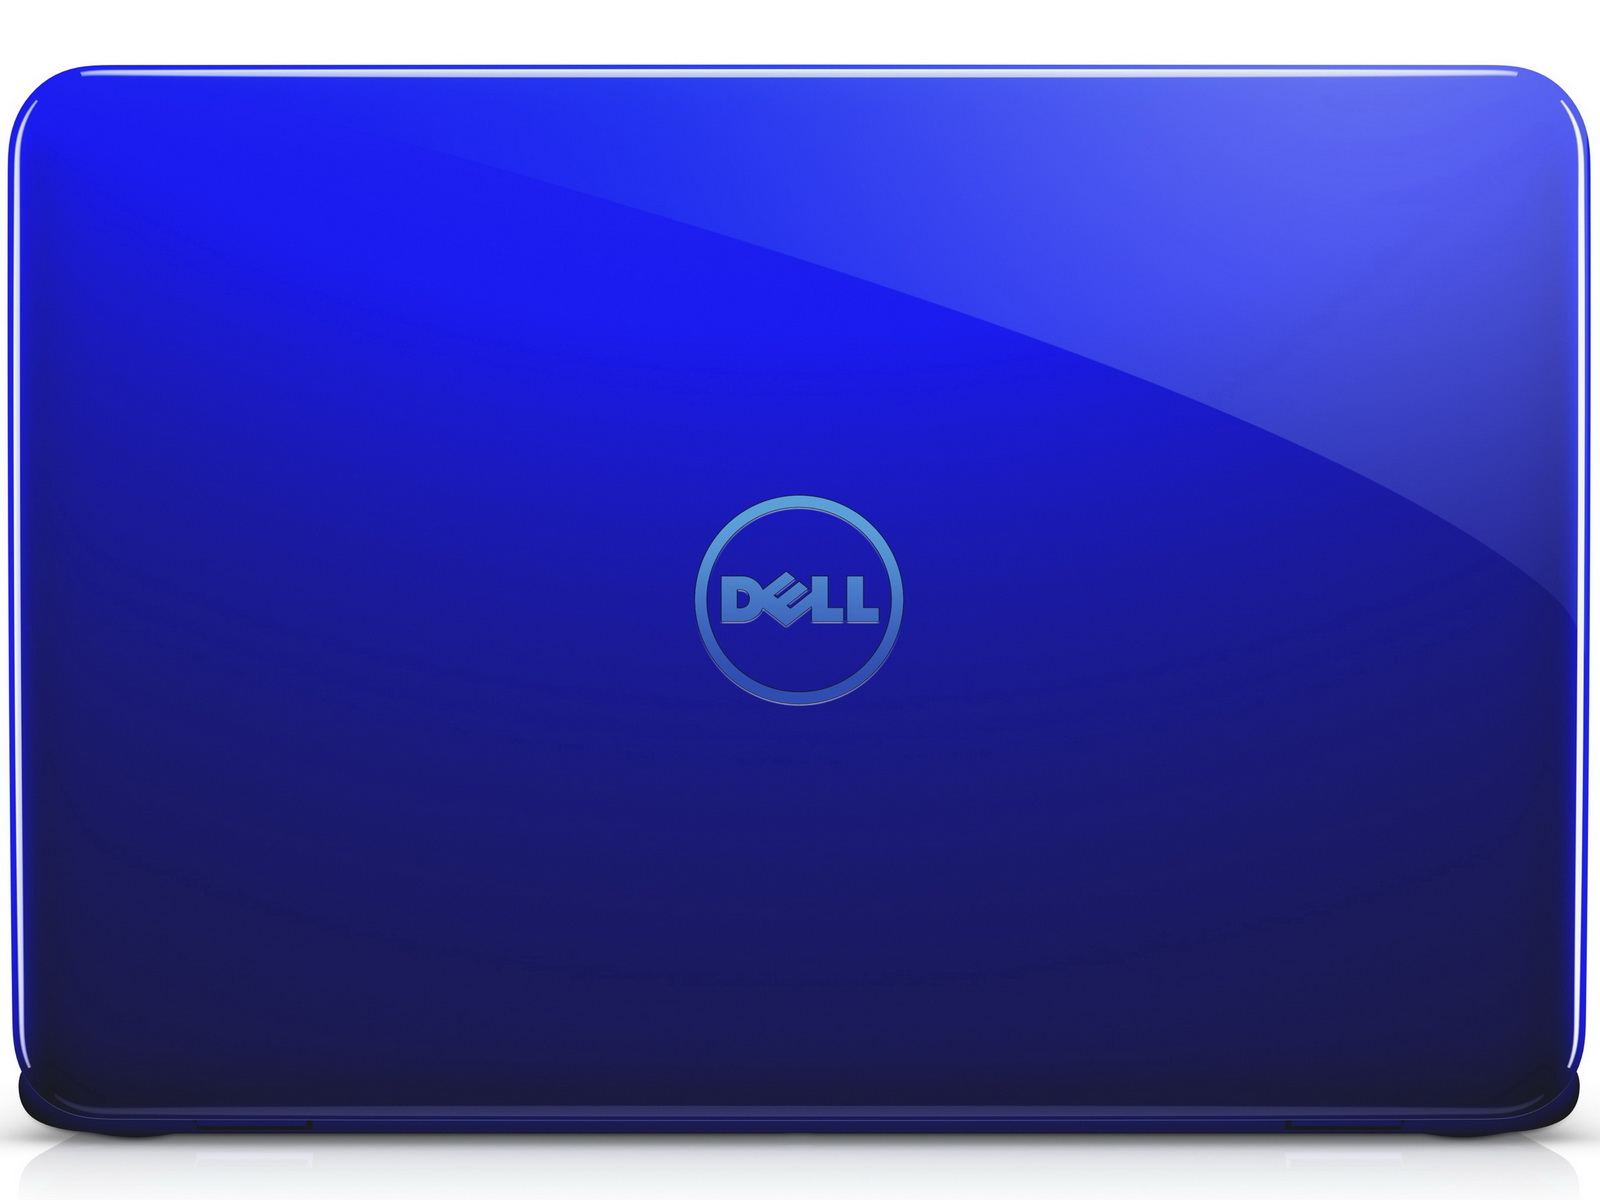 Dell introduces 11 6-inch Inspiron 11 3000 series